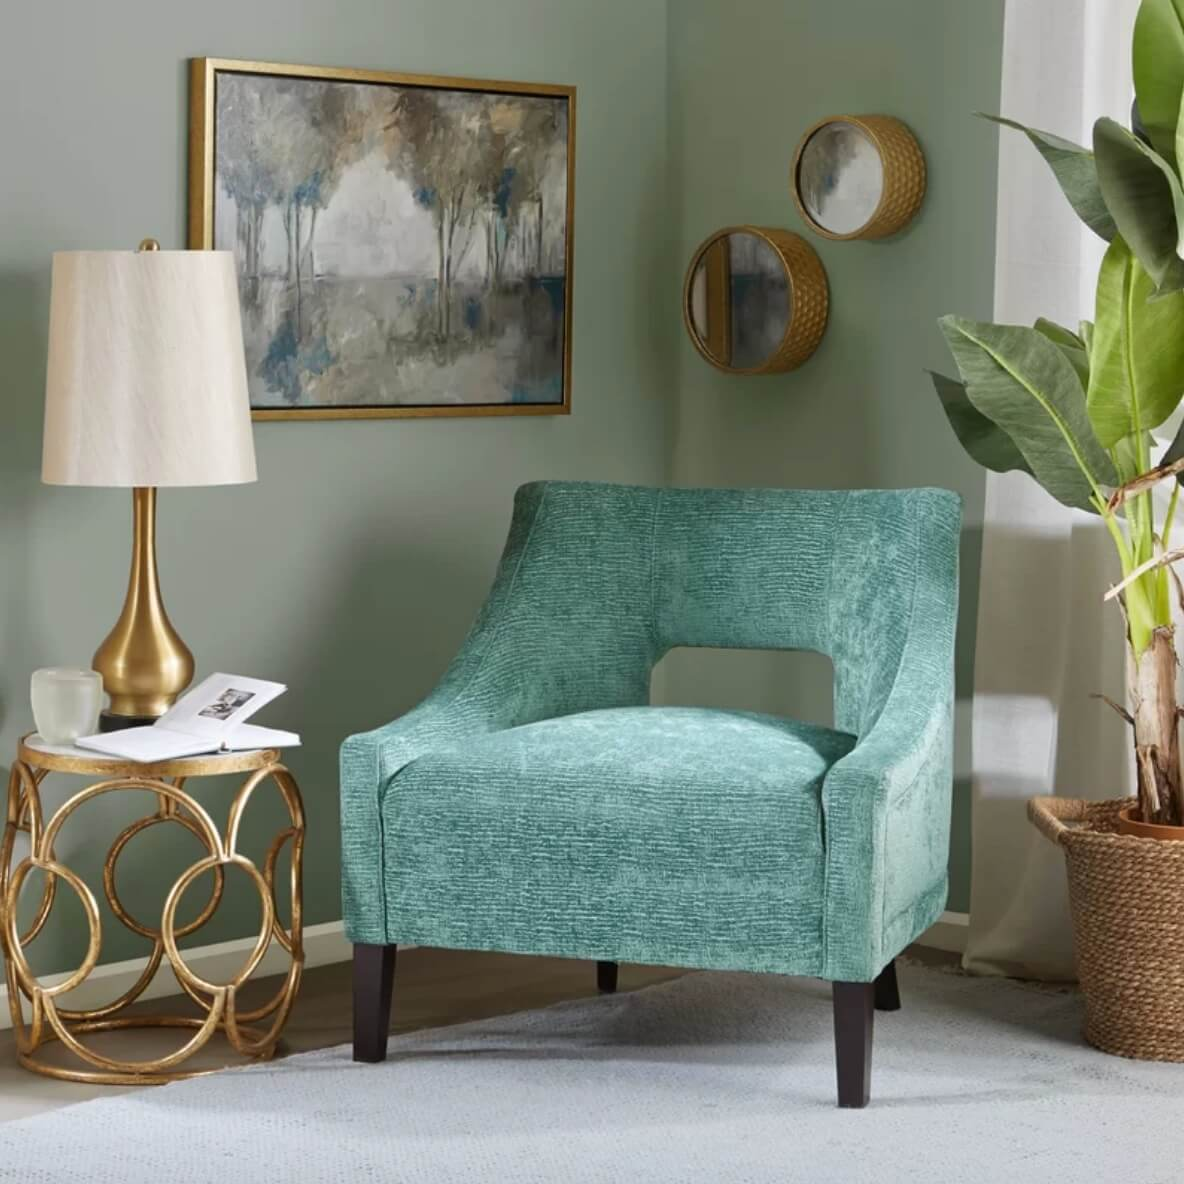 Accent Furniture For Living Room: 20 Colorful Accent Chair Ideas And Inspiration